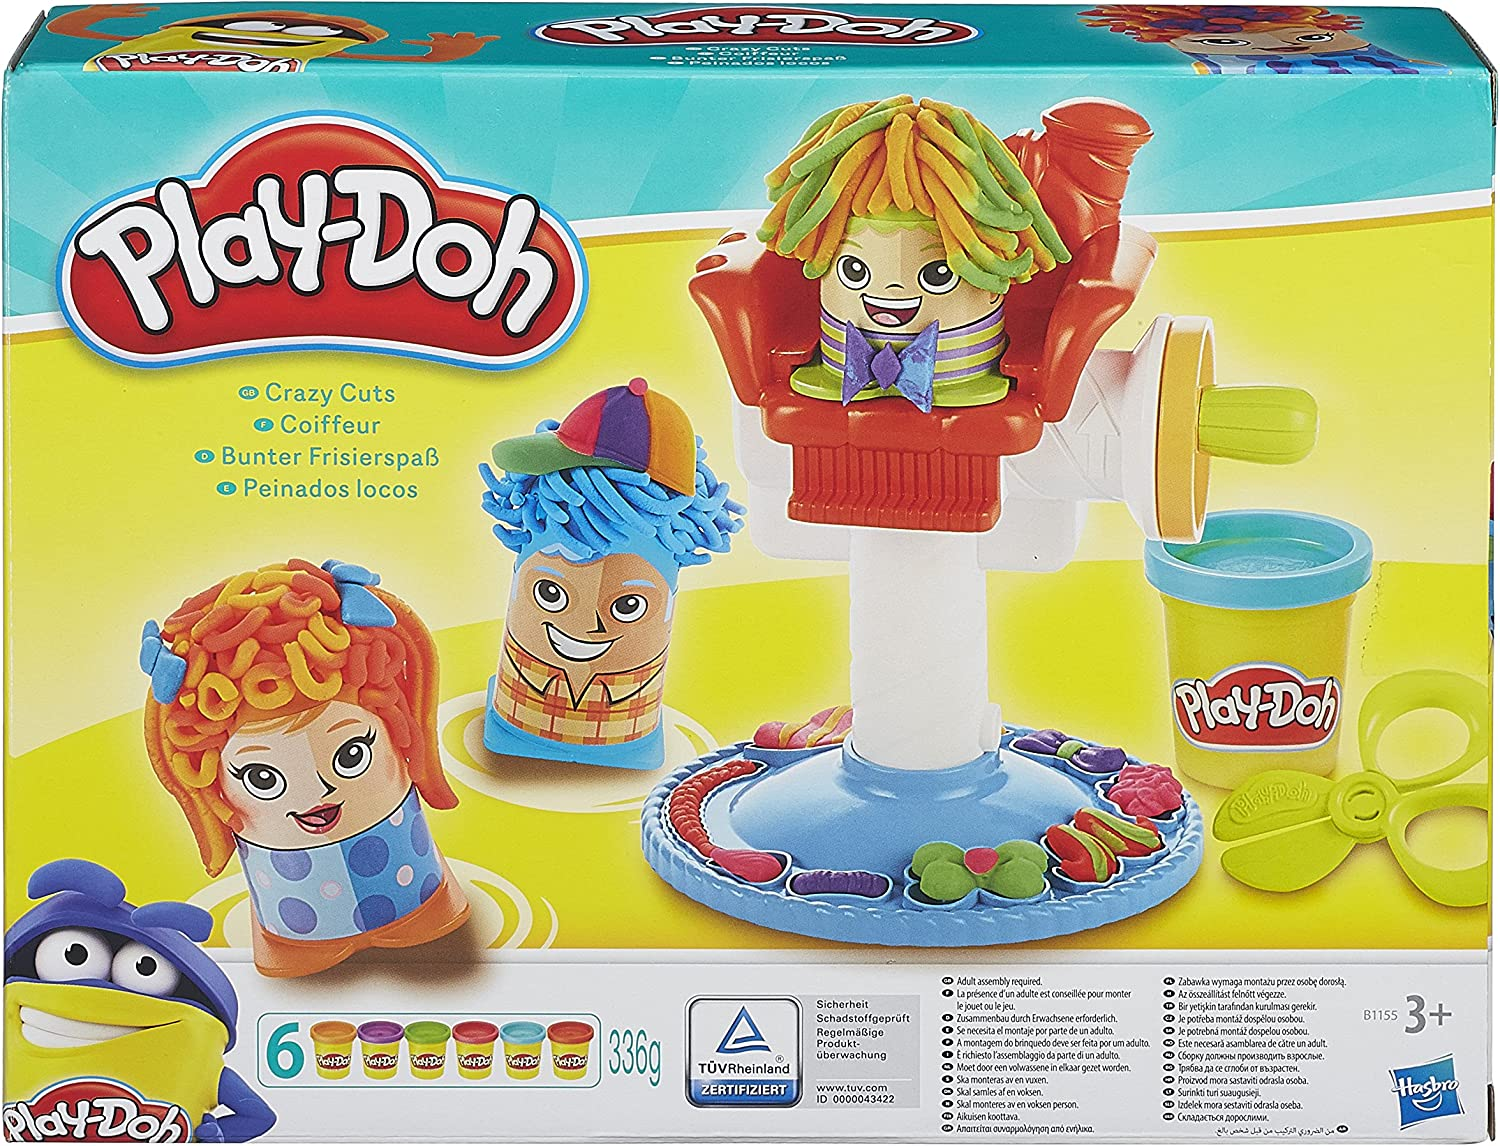 Play-Doh Crazy Cuts Retro Pack: Amazon.co.uk: Toys & Games